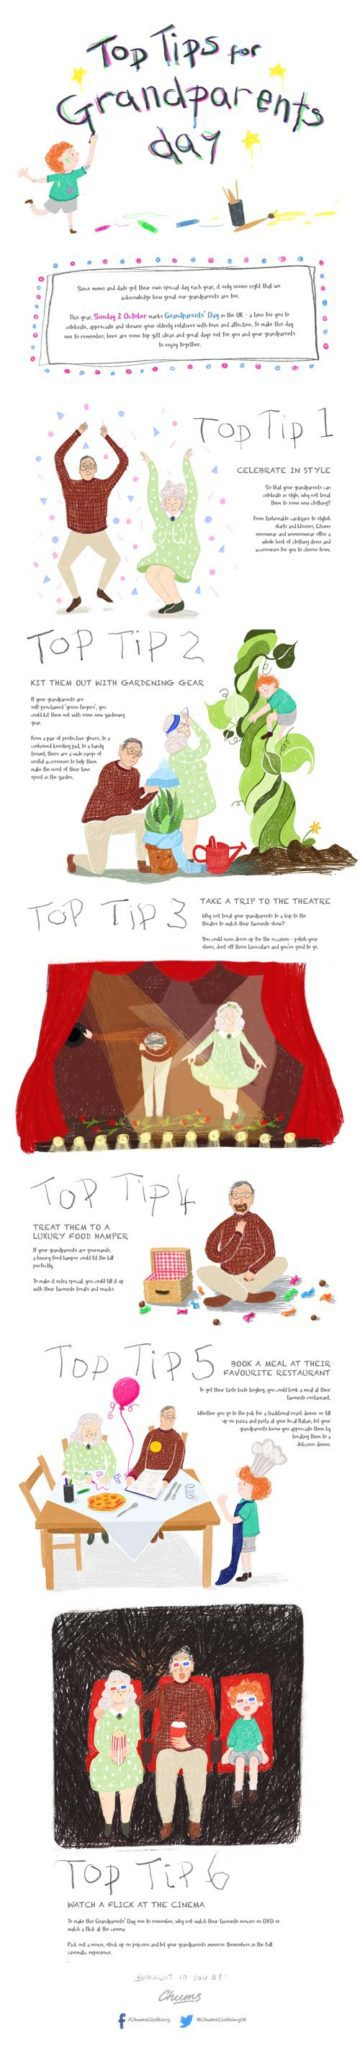 Chums-Infographic-Grandparents-Day